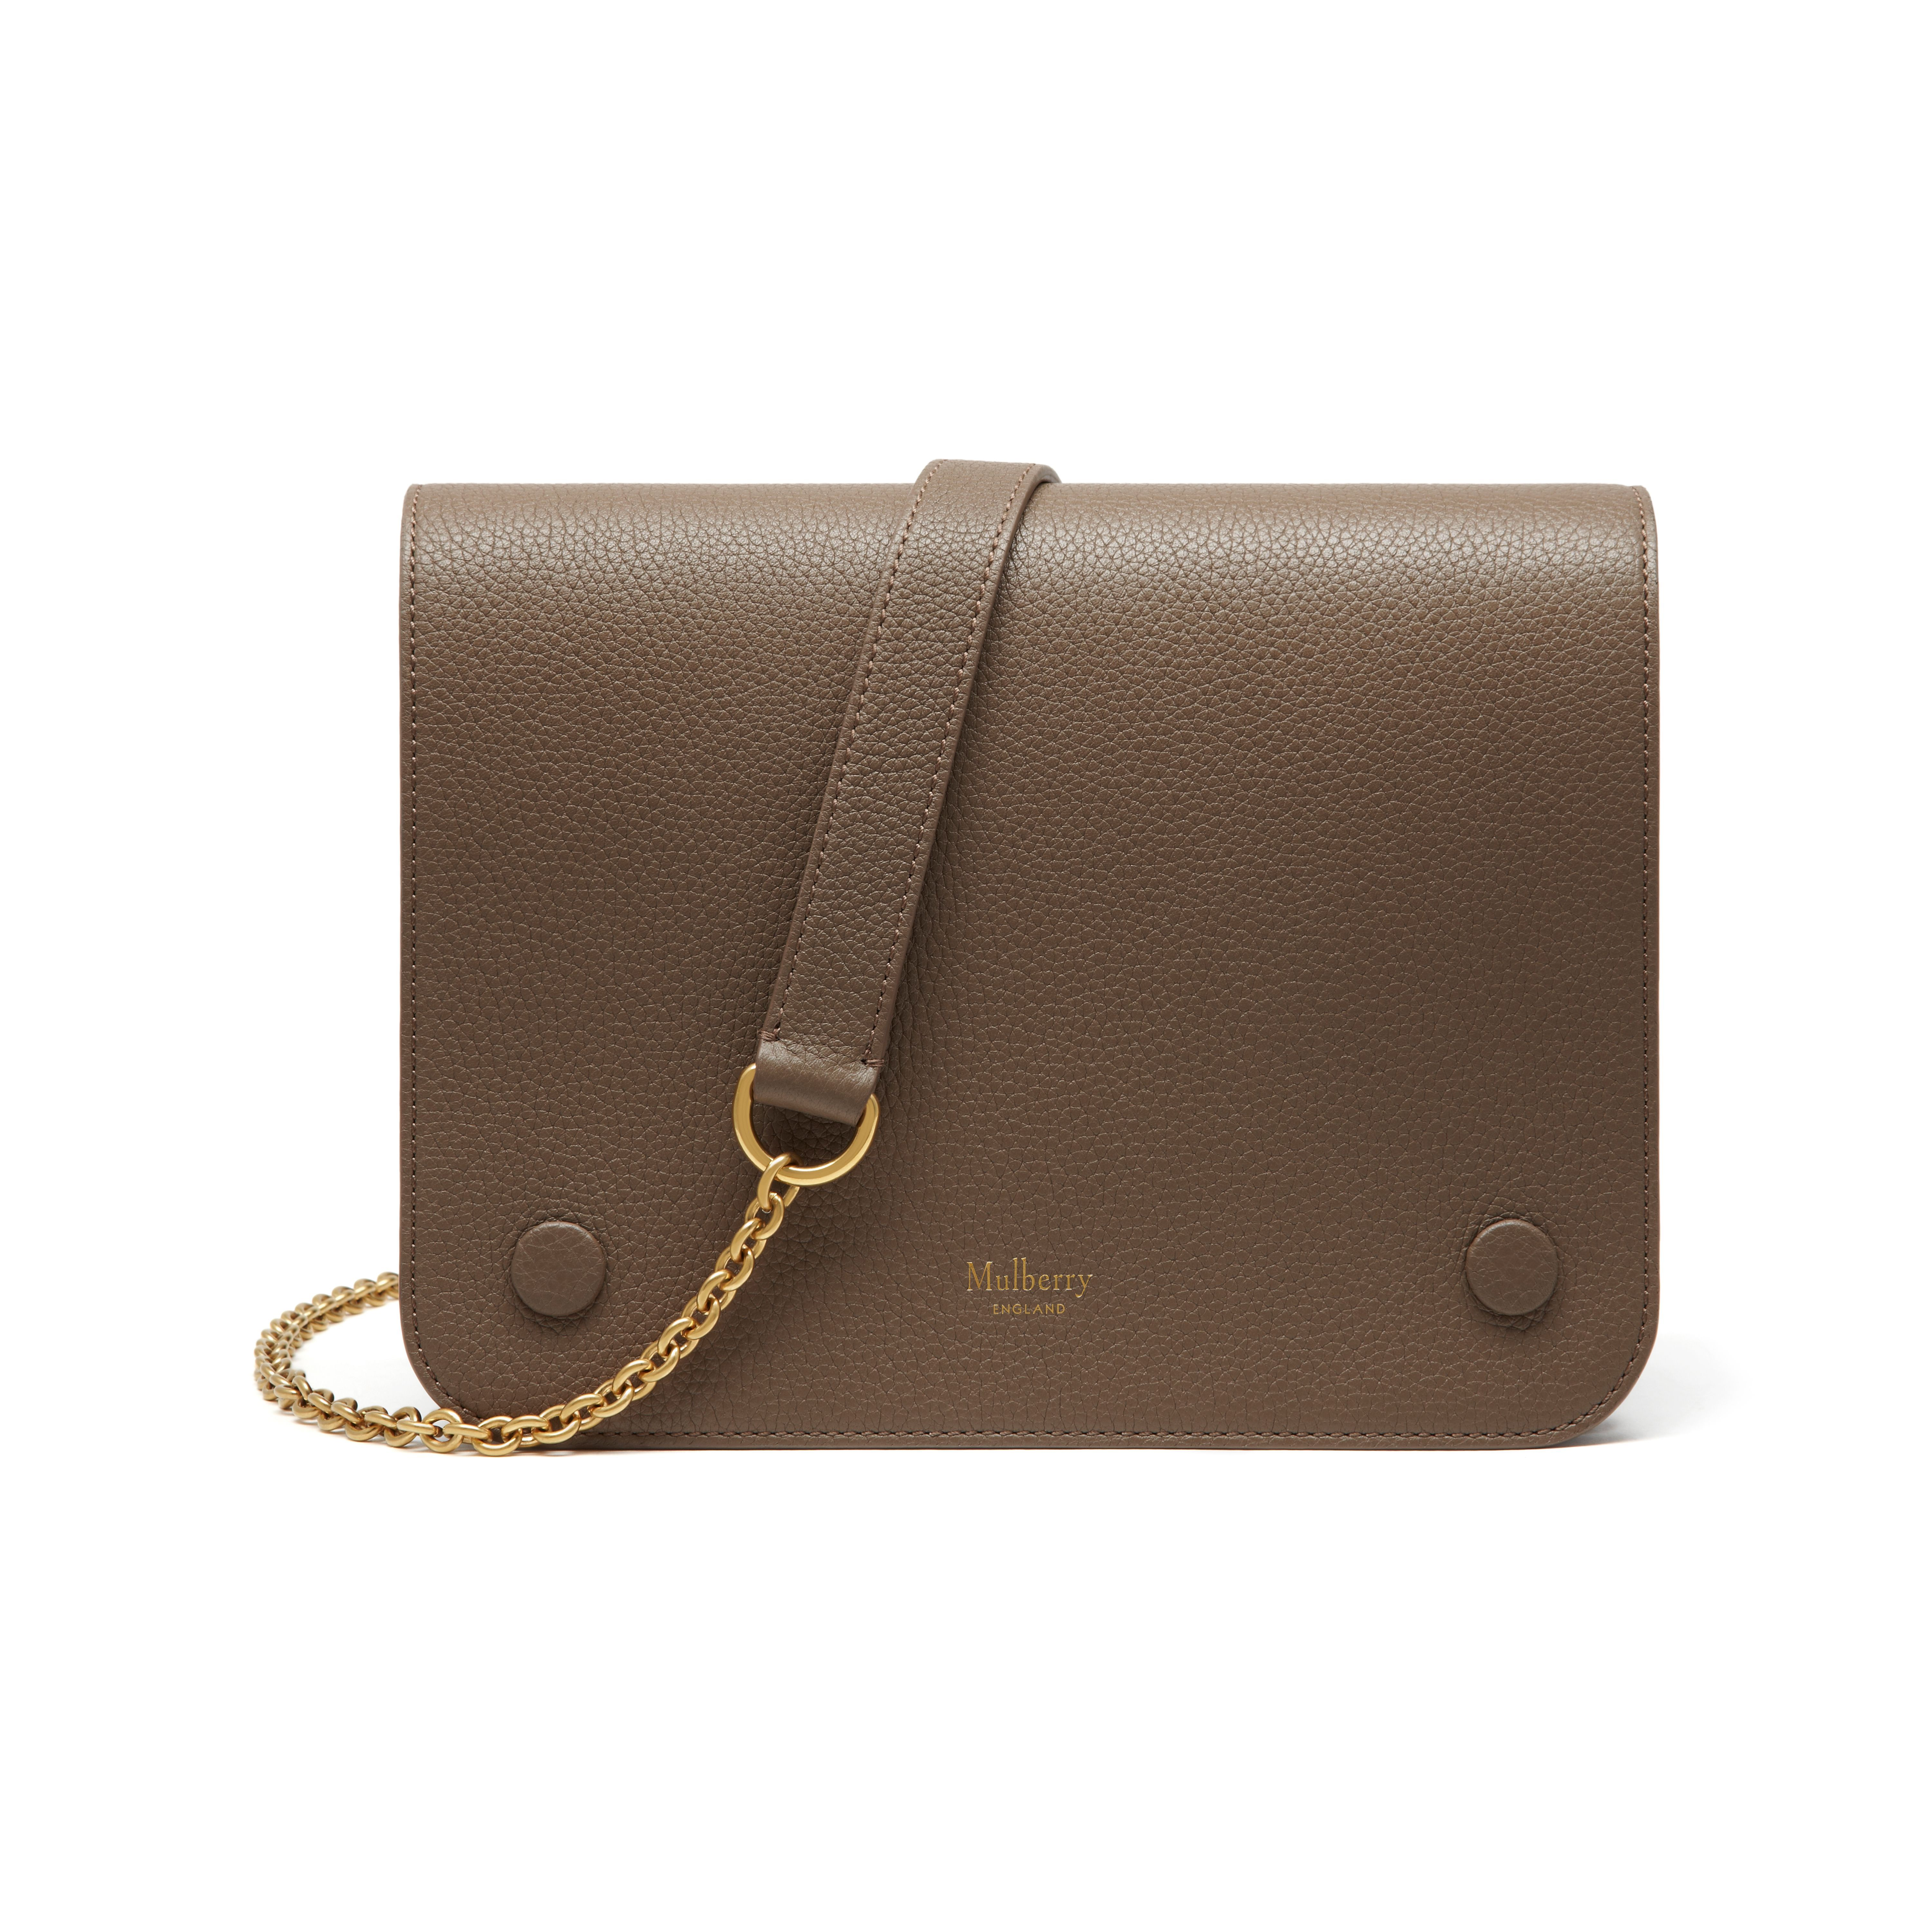 8fcbe79b27 Shop the Clifton in Clay Small Classic Grain at Mulberry.com. Introducing  the Clifton, a new compact, cross body style that cleverly camouflages an  ...